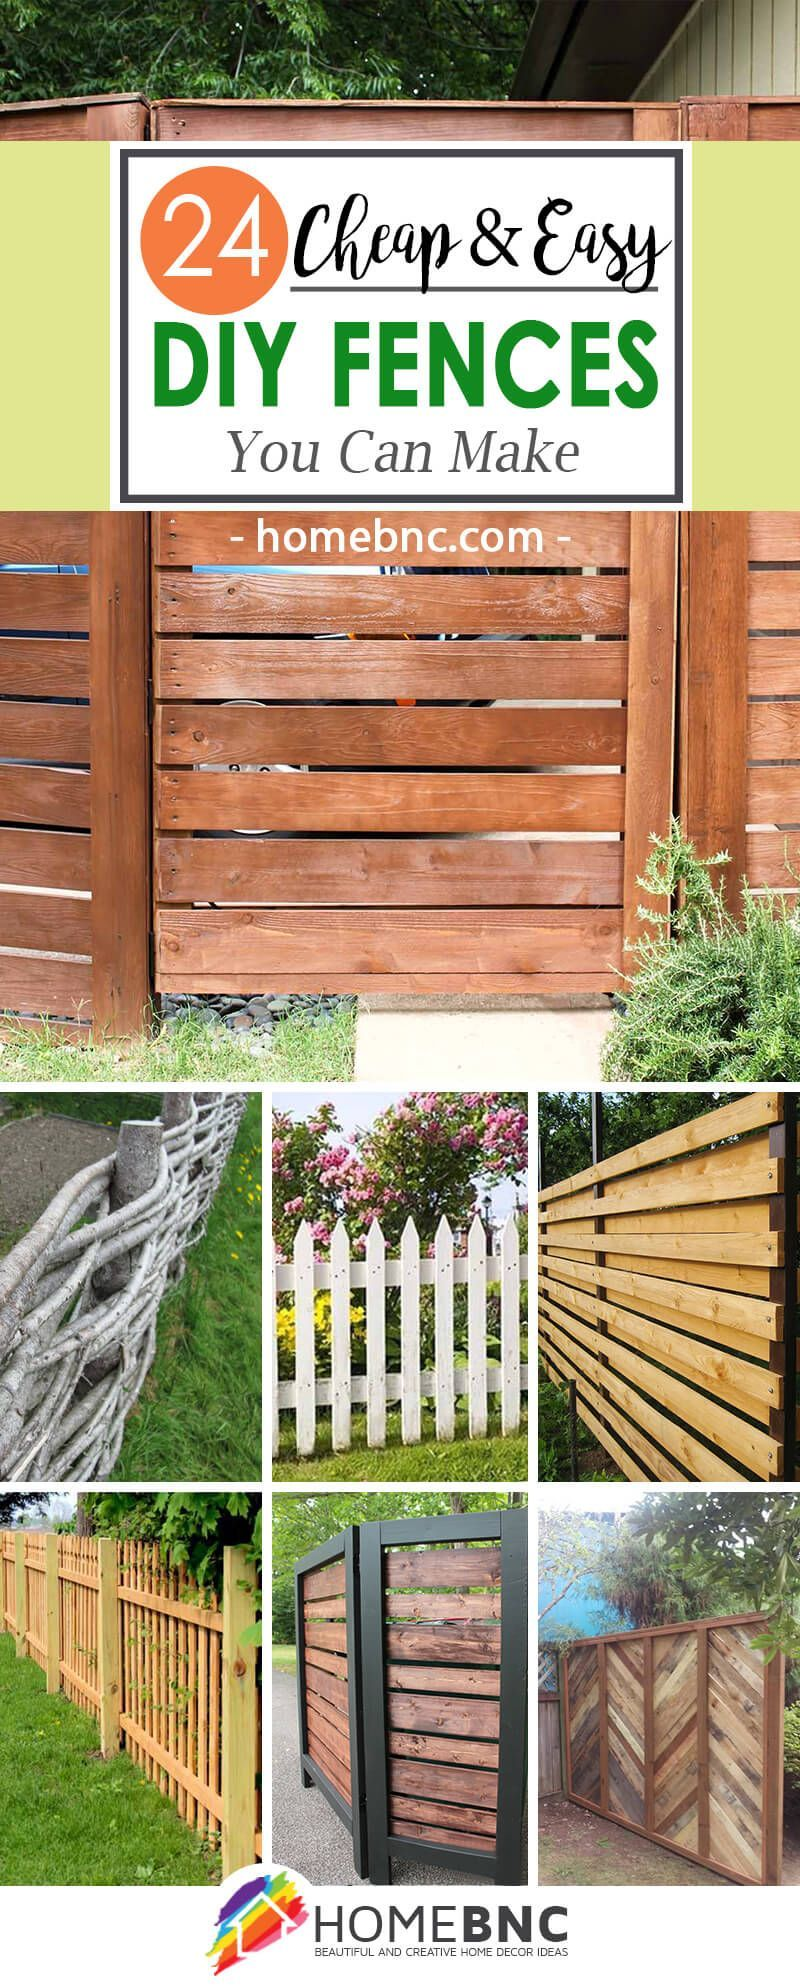 DIY Fence Decor Ideas